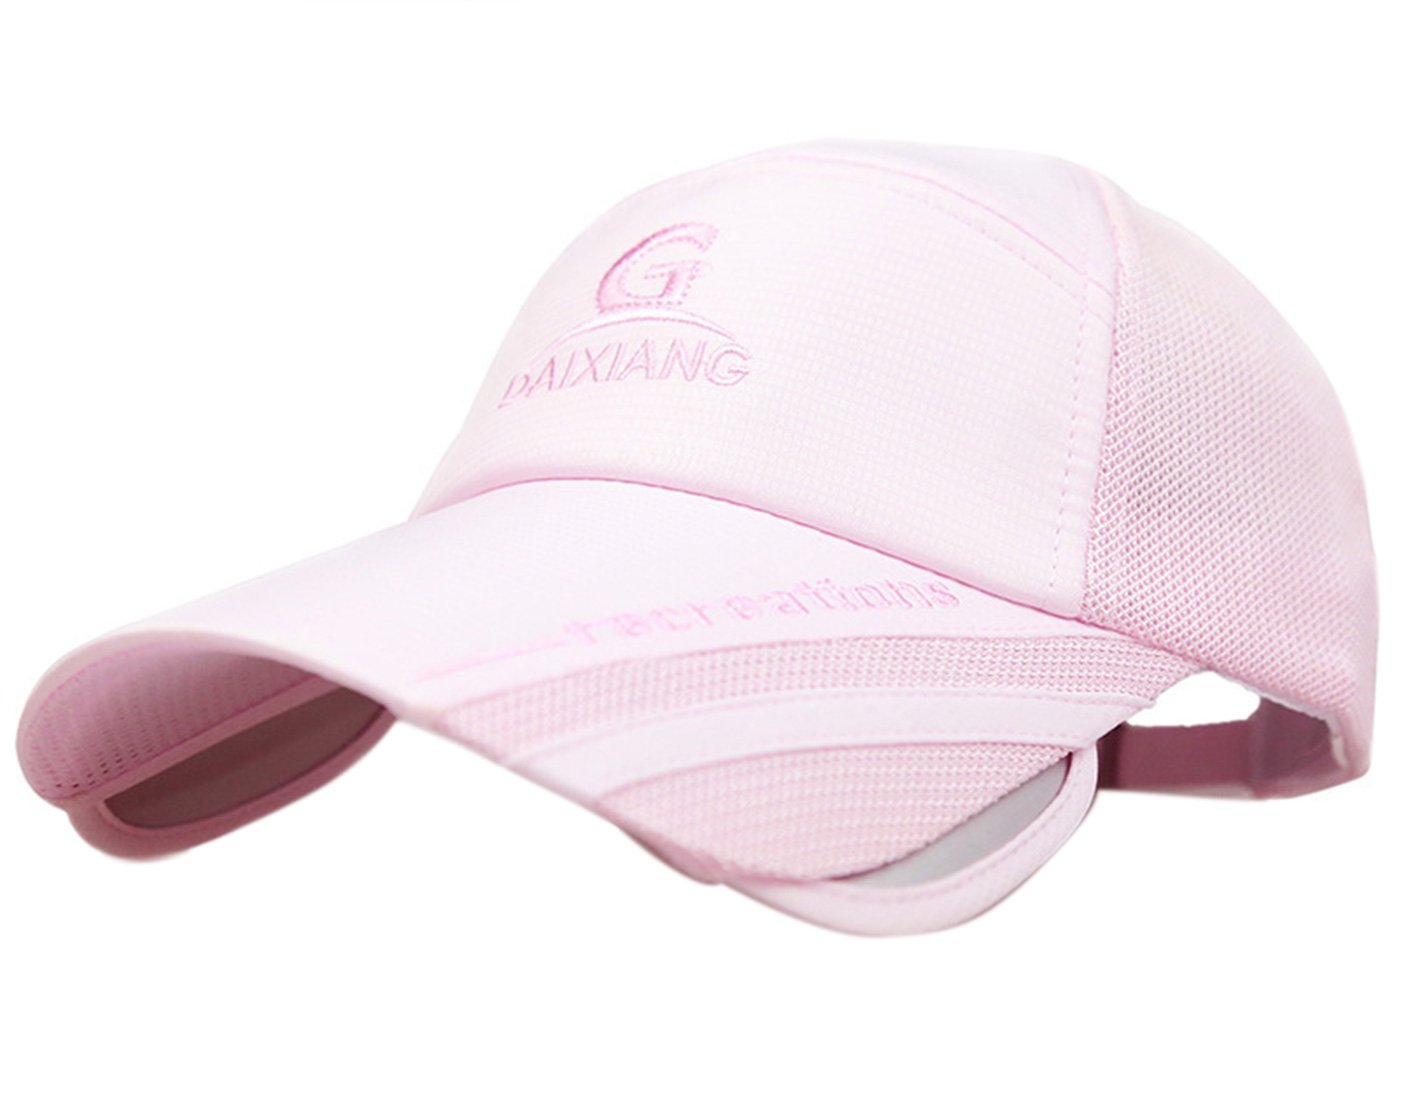 Anti-UV Sports Fashion Sun Visor Hat Scalable Brim PeakTennis Cap Unisex Summer Sun Hat Outdoor Hat Baseball Cap Mesh Sports Hats Pink